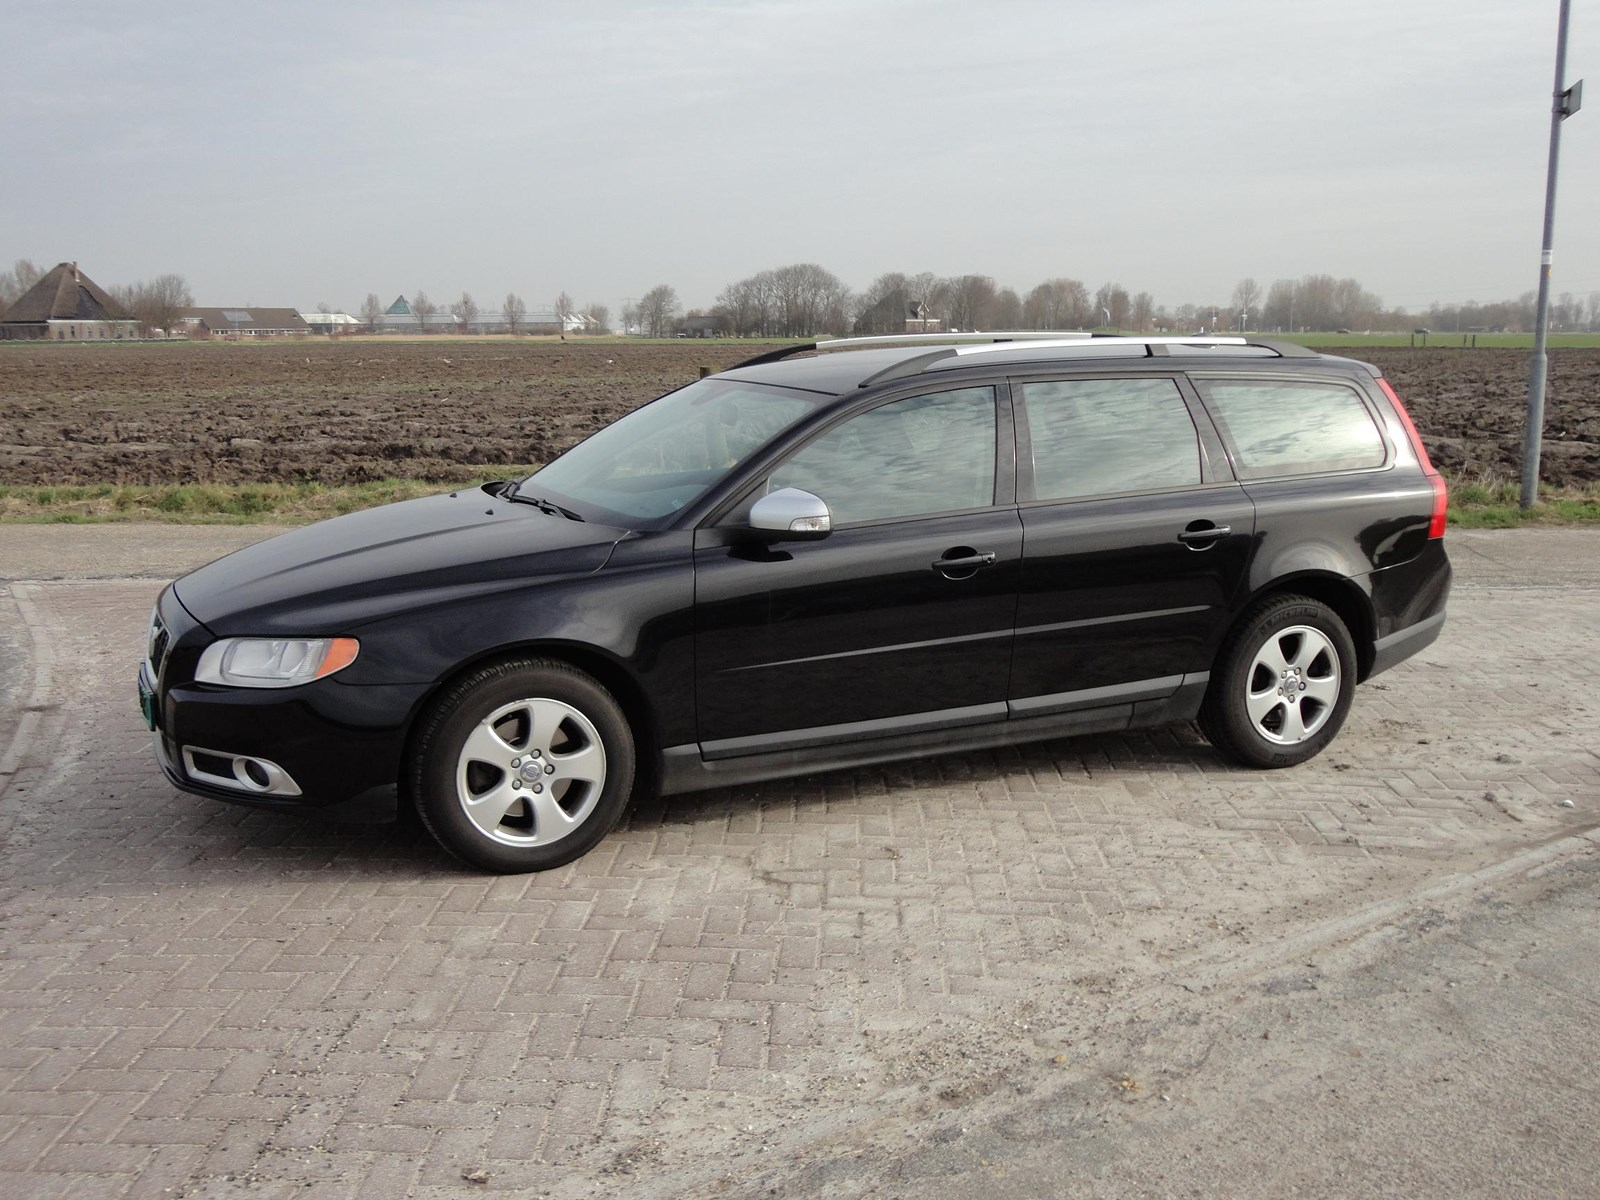 testverslag volvo v70 kinetic de nieuwe generatie. Black Bedroom Furniture Sets. Home Design Ideas